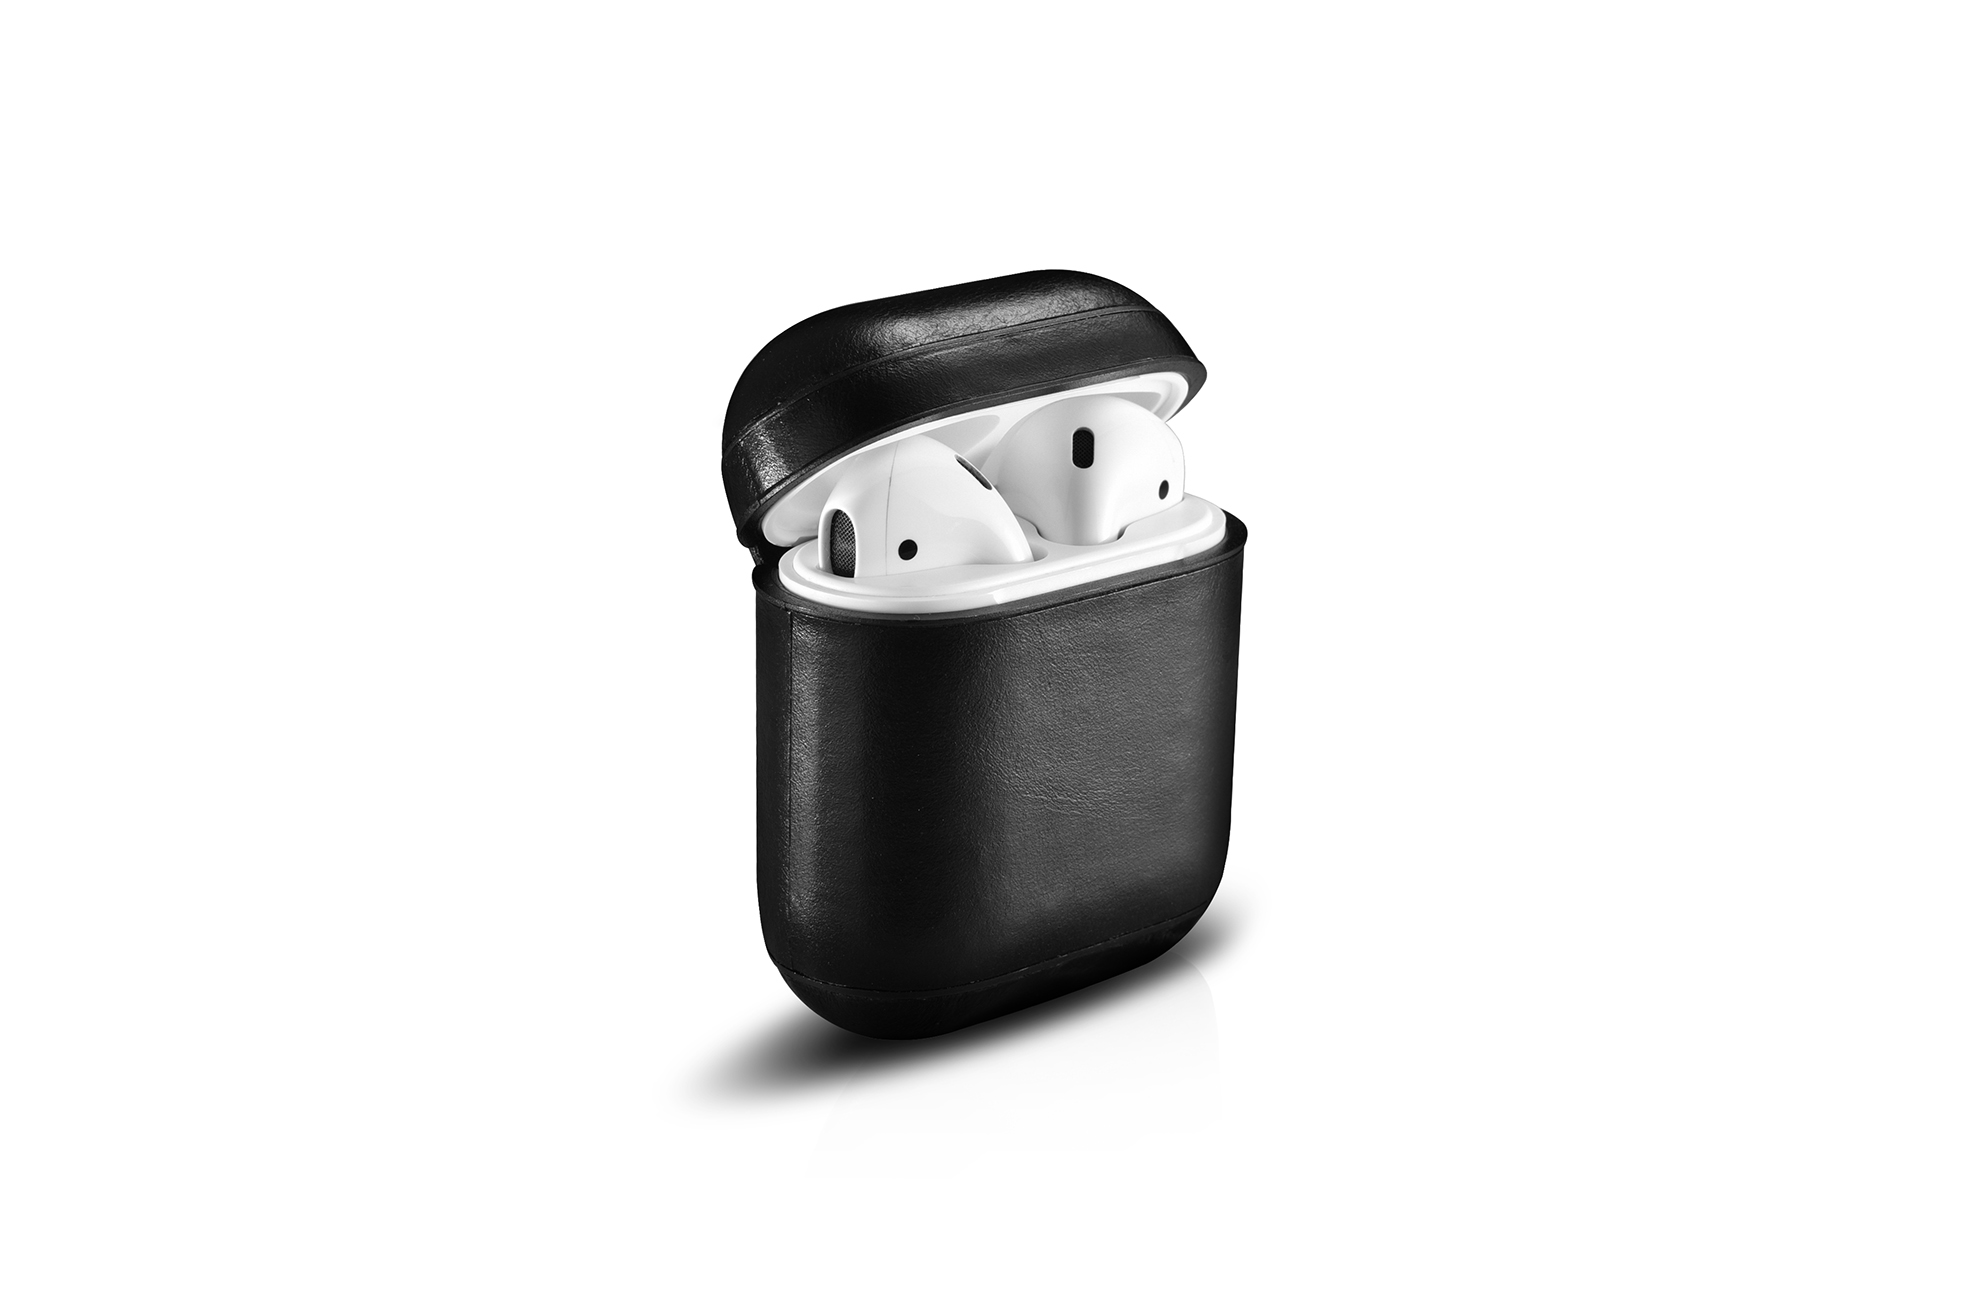 Fabbrica OEM Per Apple AirPod Custodia In Pelle